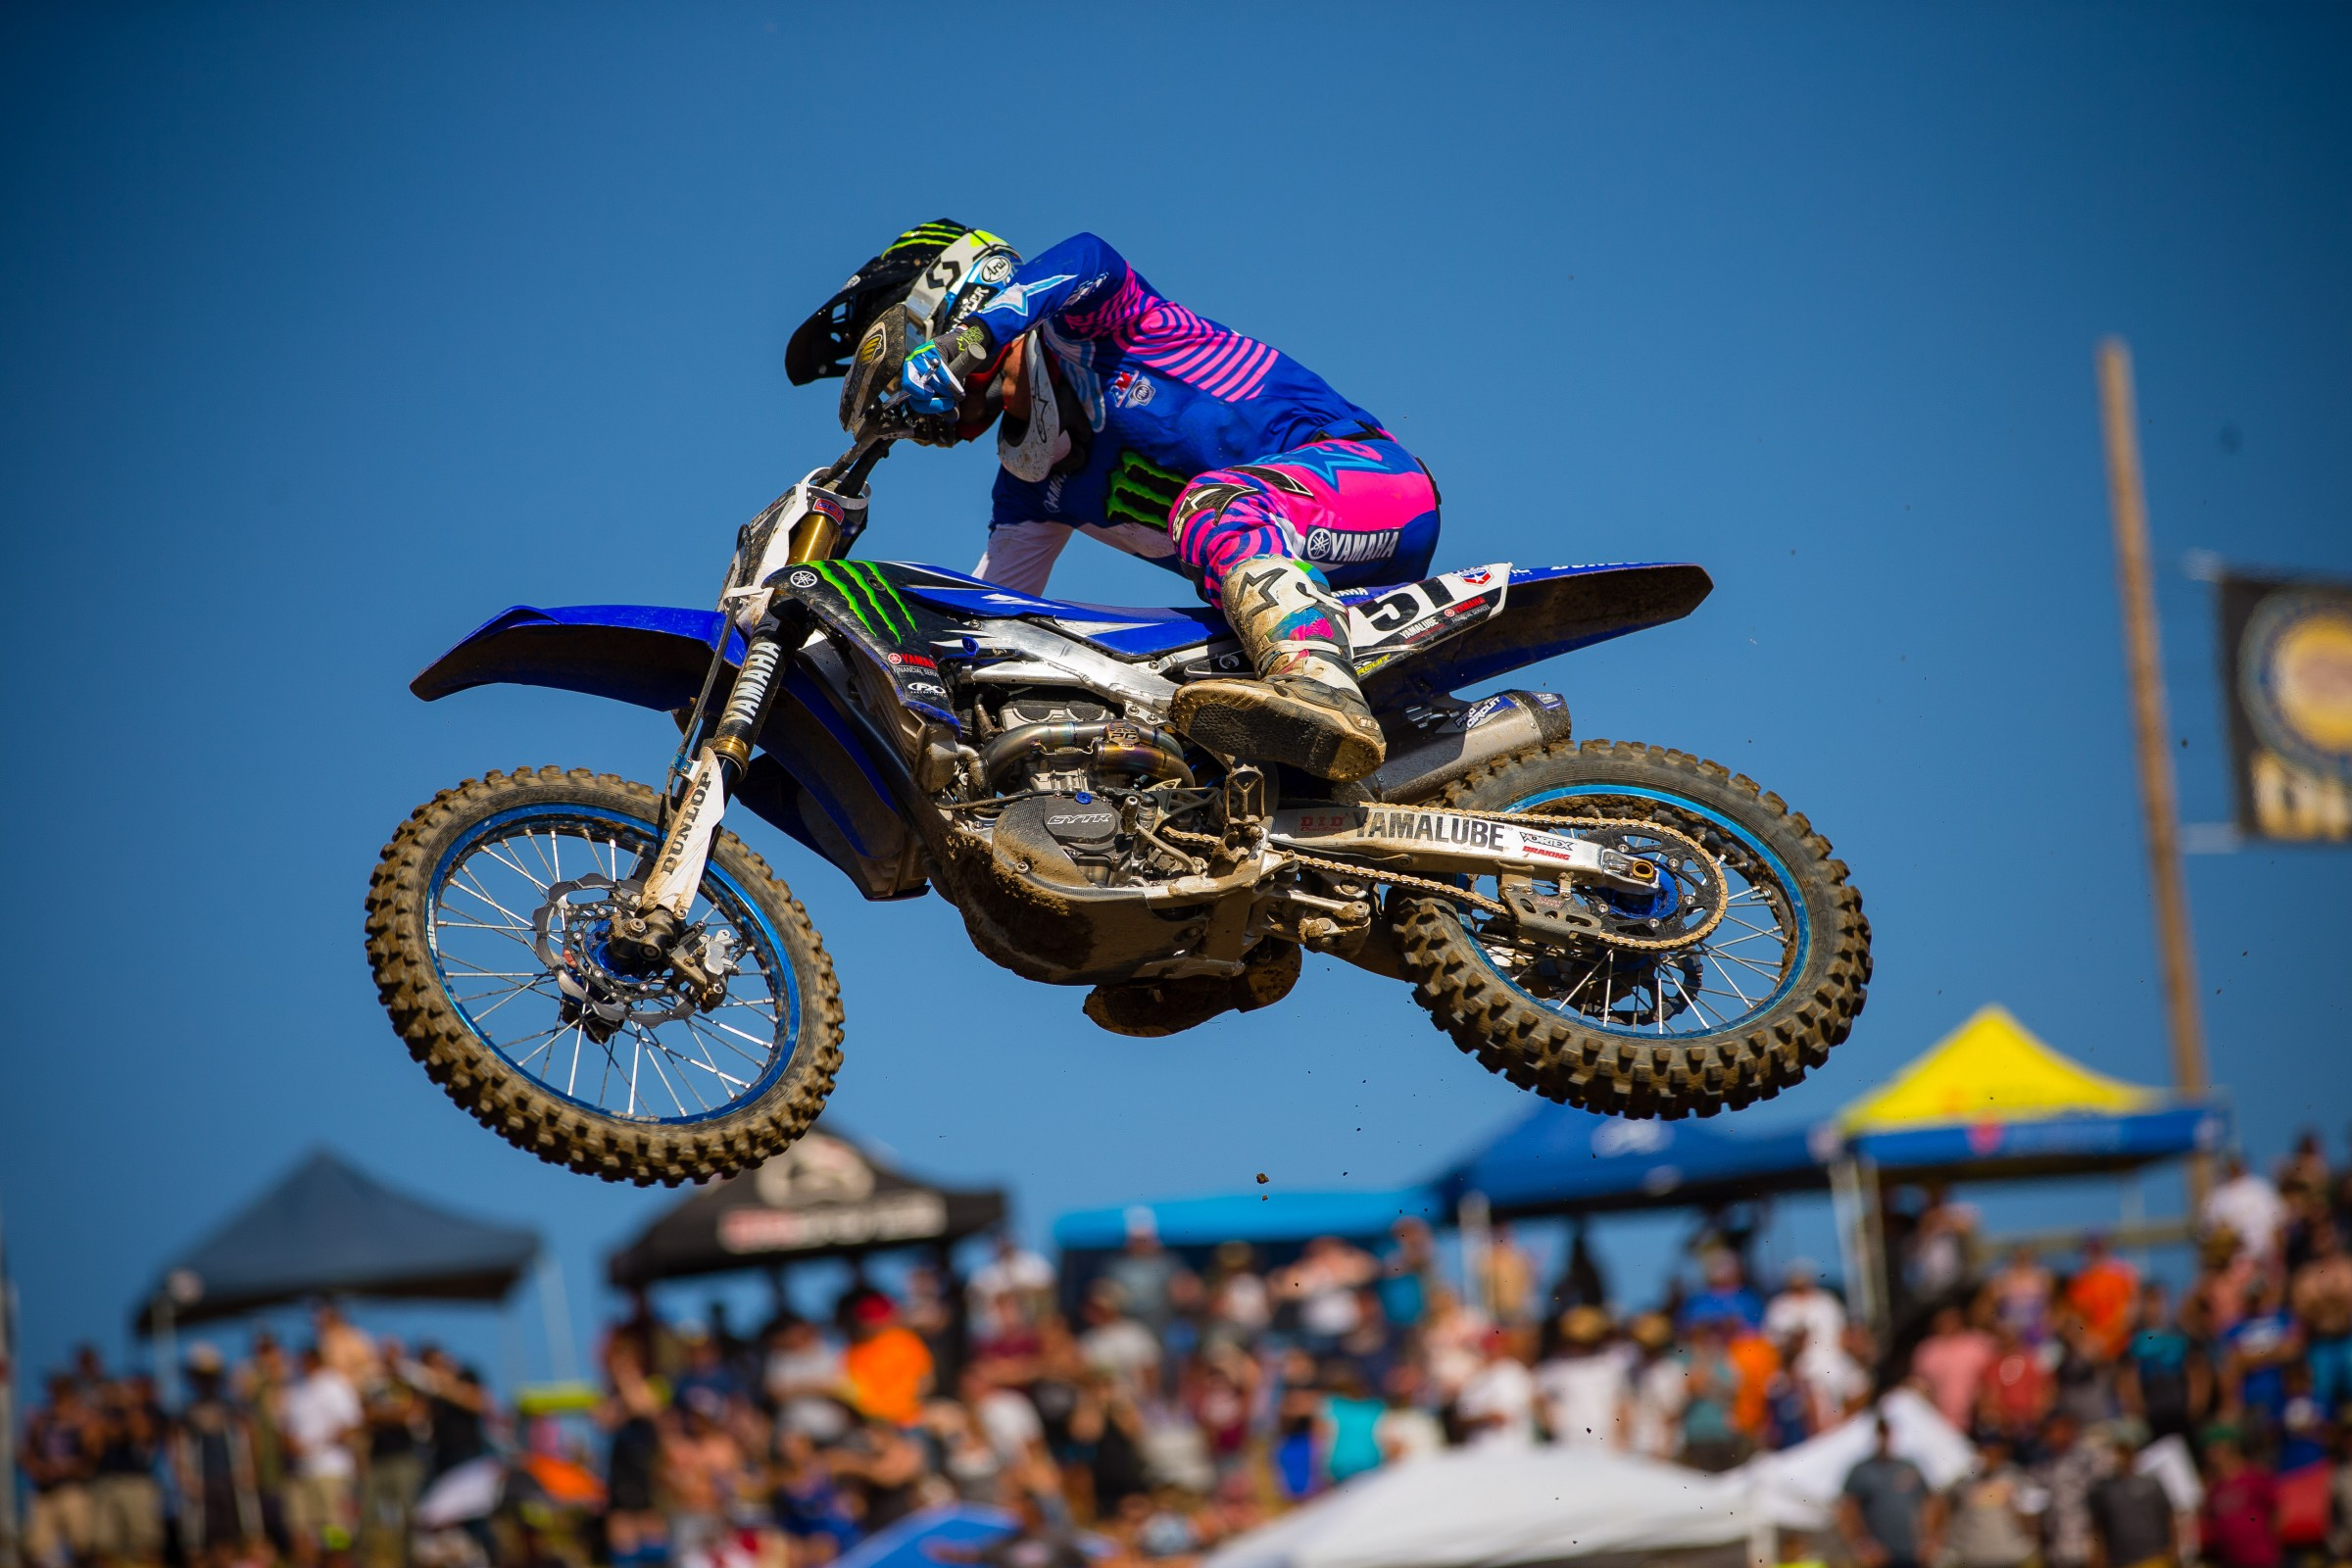 Barcia has gone 3-4-6 in the first three races of the Pro Motocross season.